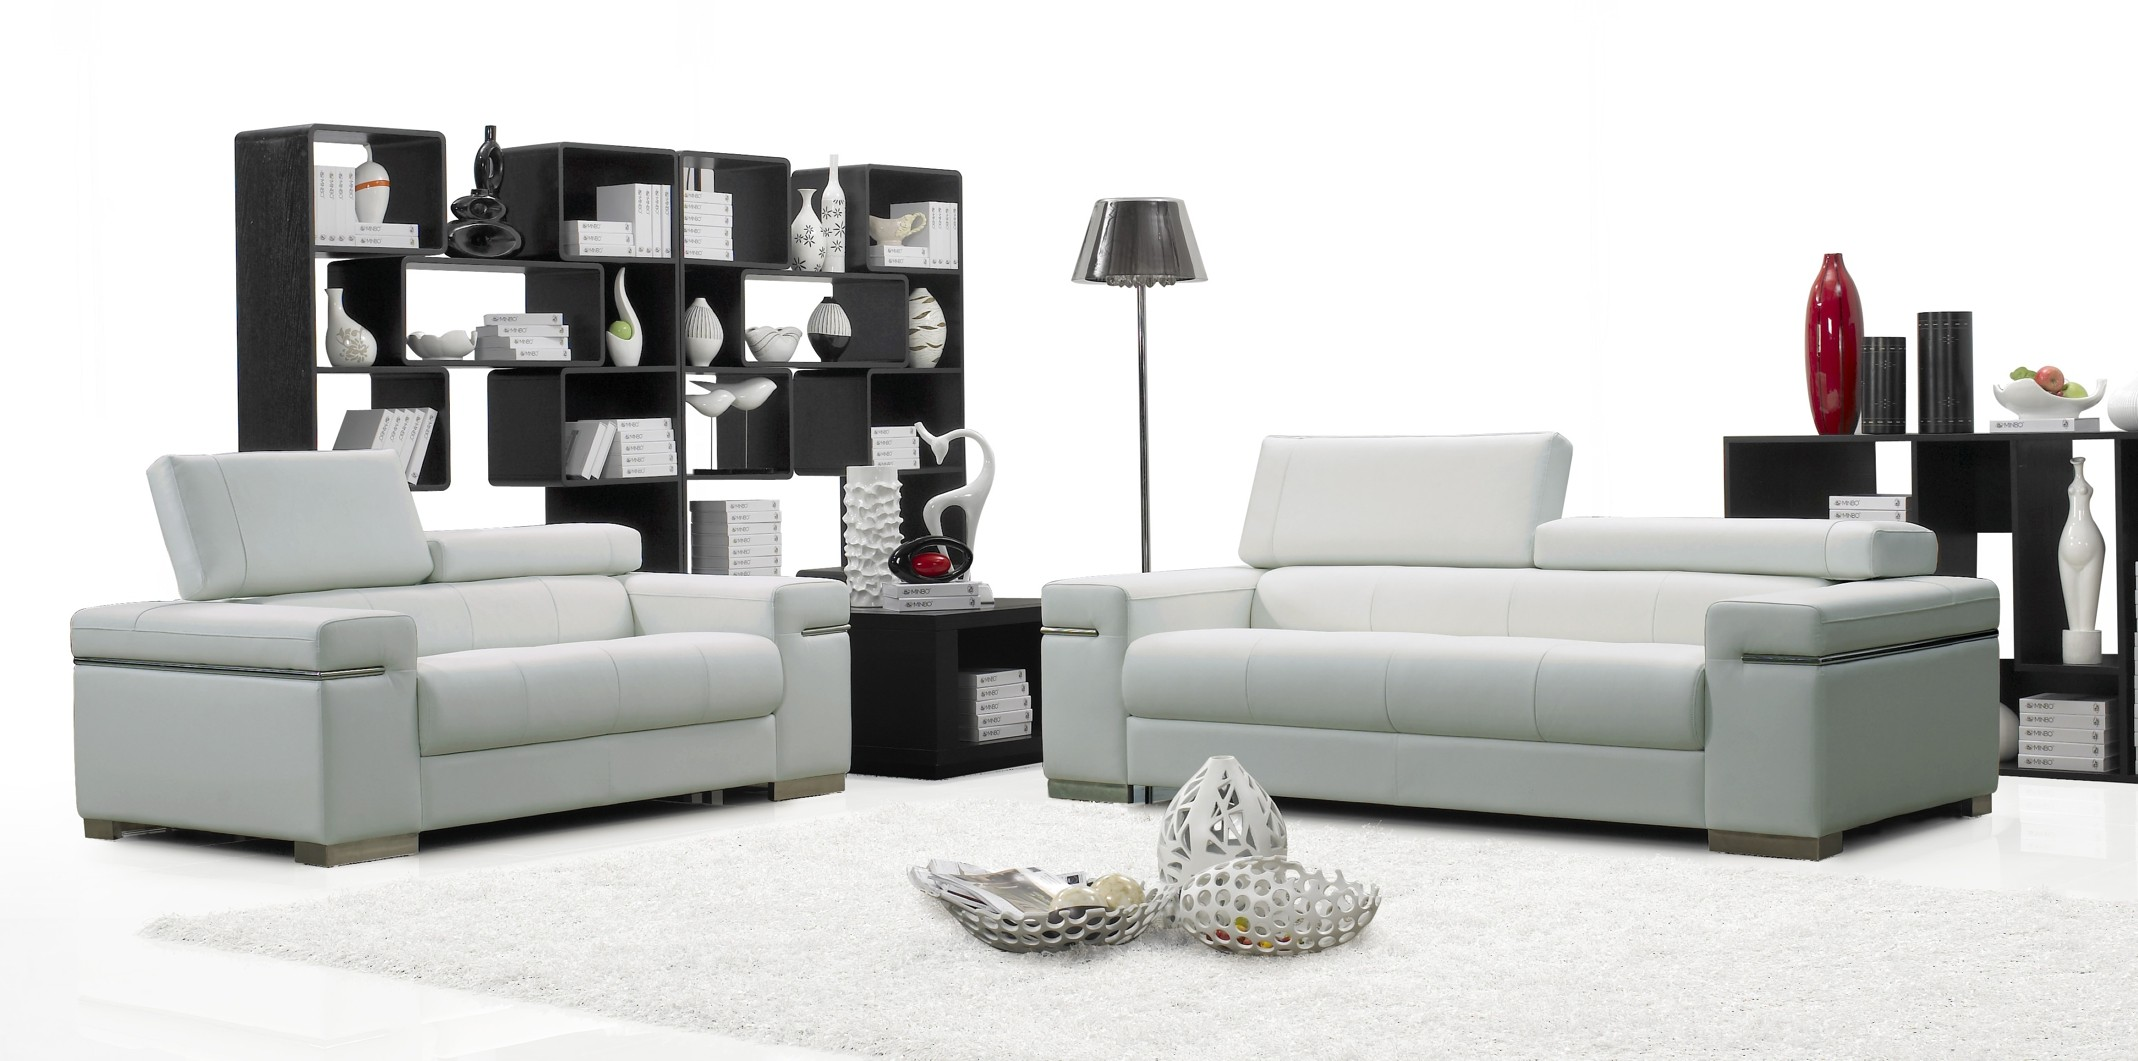 Modern sofa sets white modern sofa set vg 74 leather sofas for Contemporary furniture ideas living room